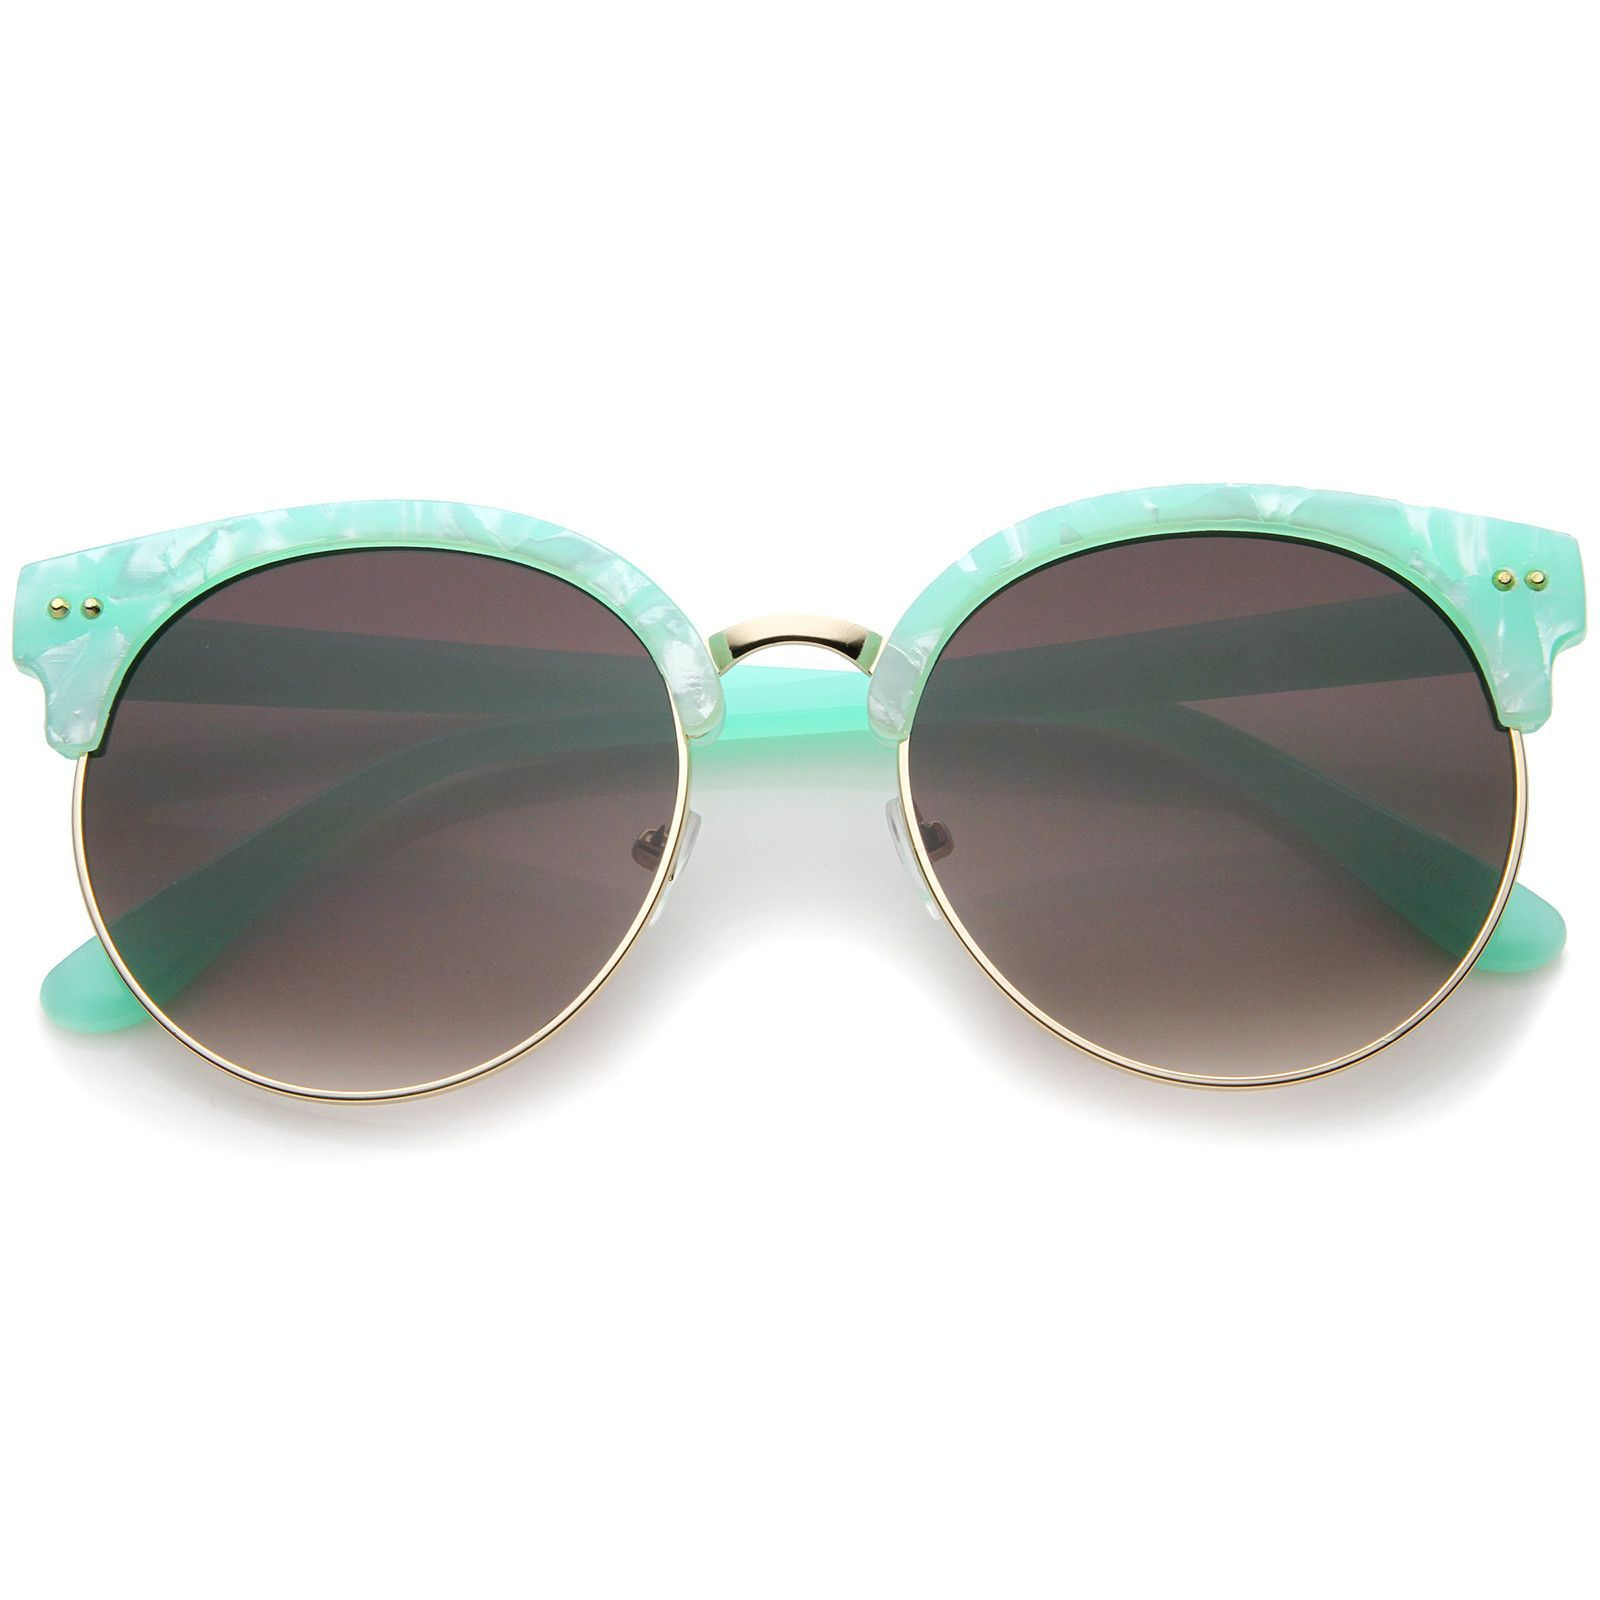 95e530abf6 Womens Half-Frame Marble Finish Moon Cut Flat Lens Round Sunglasses   oversized  sunglass